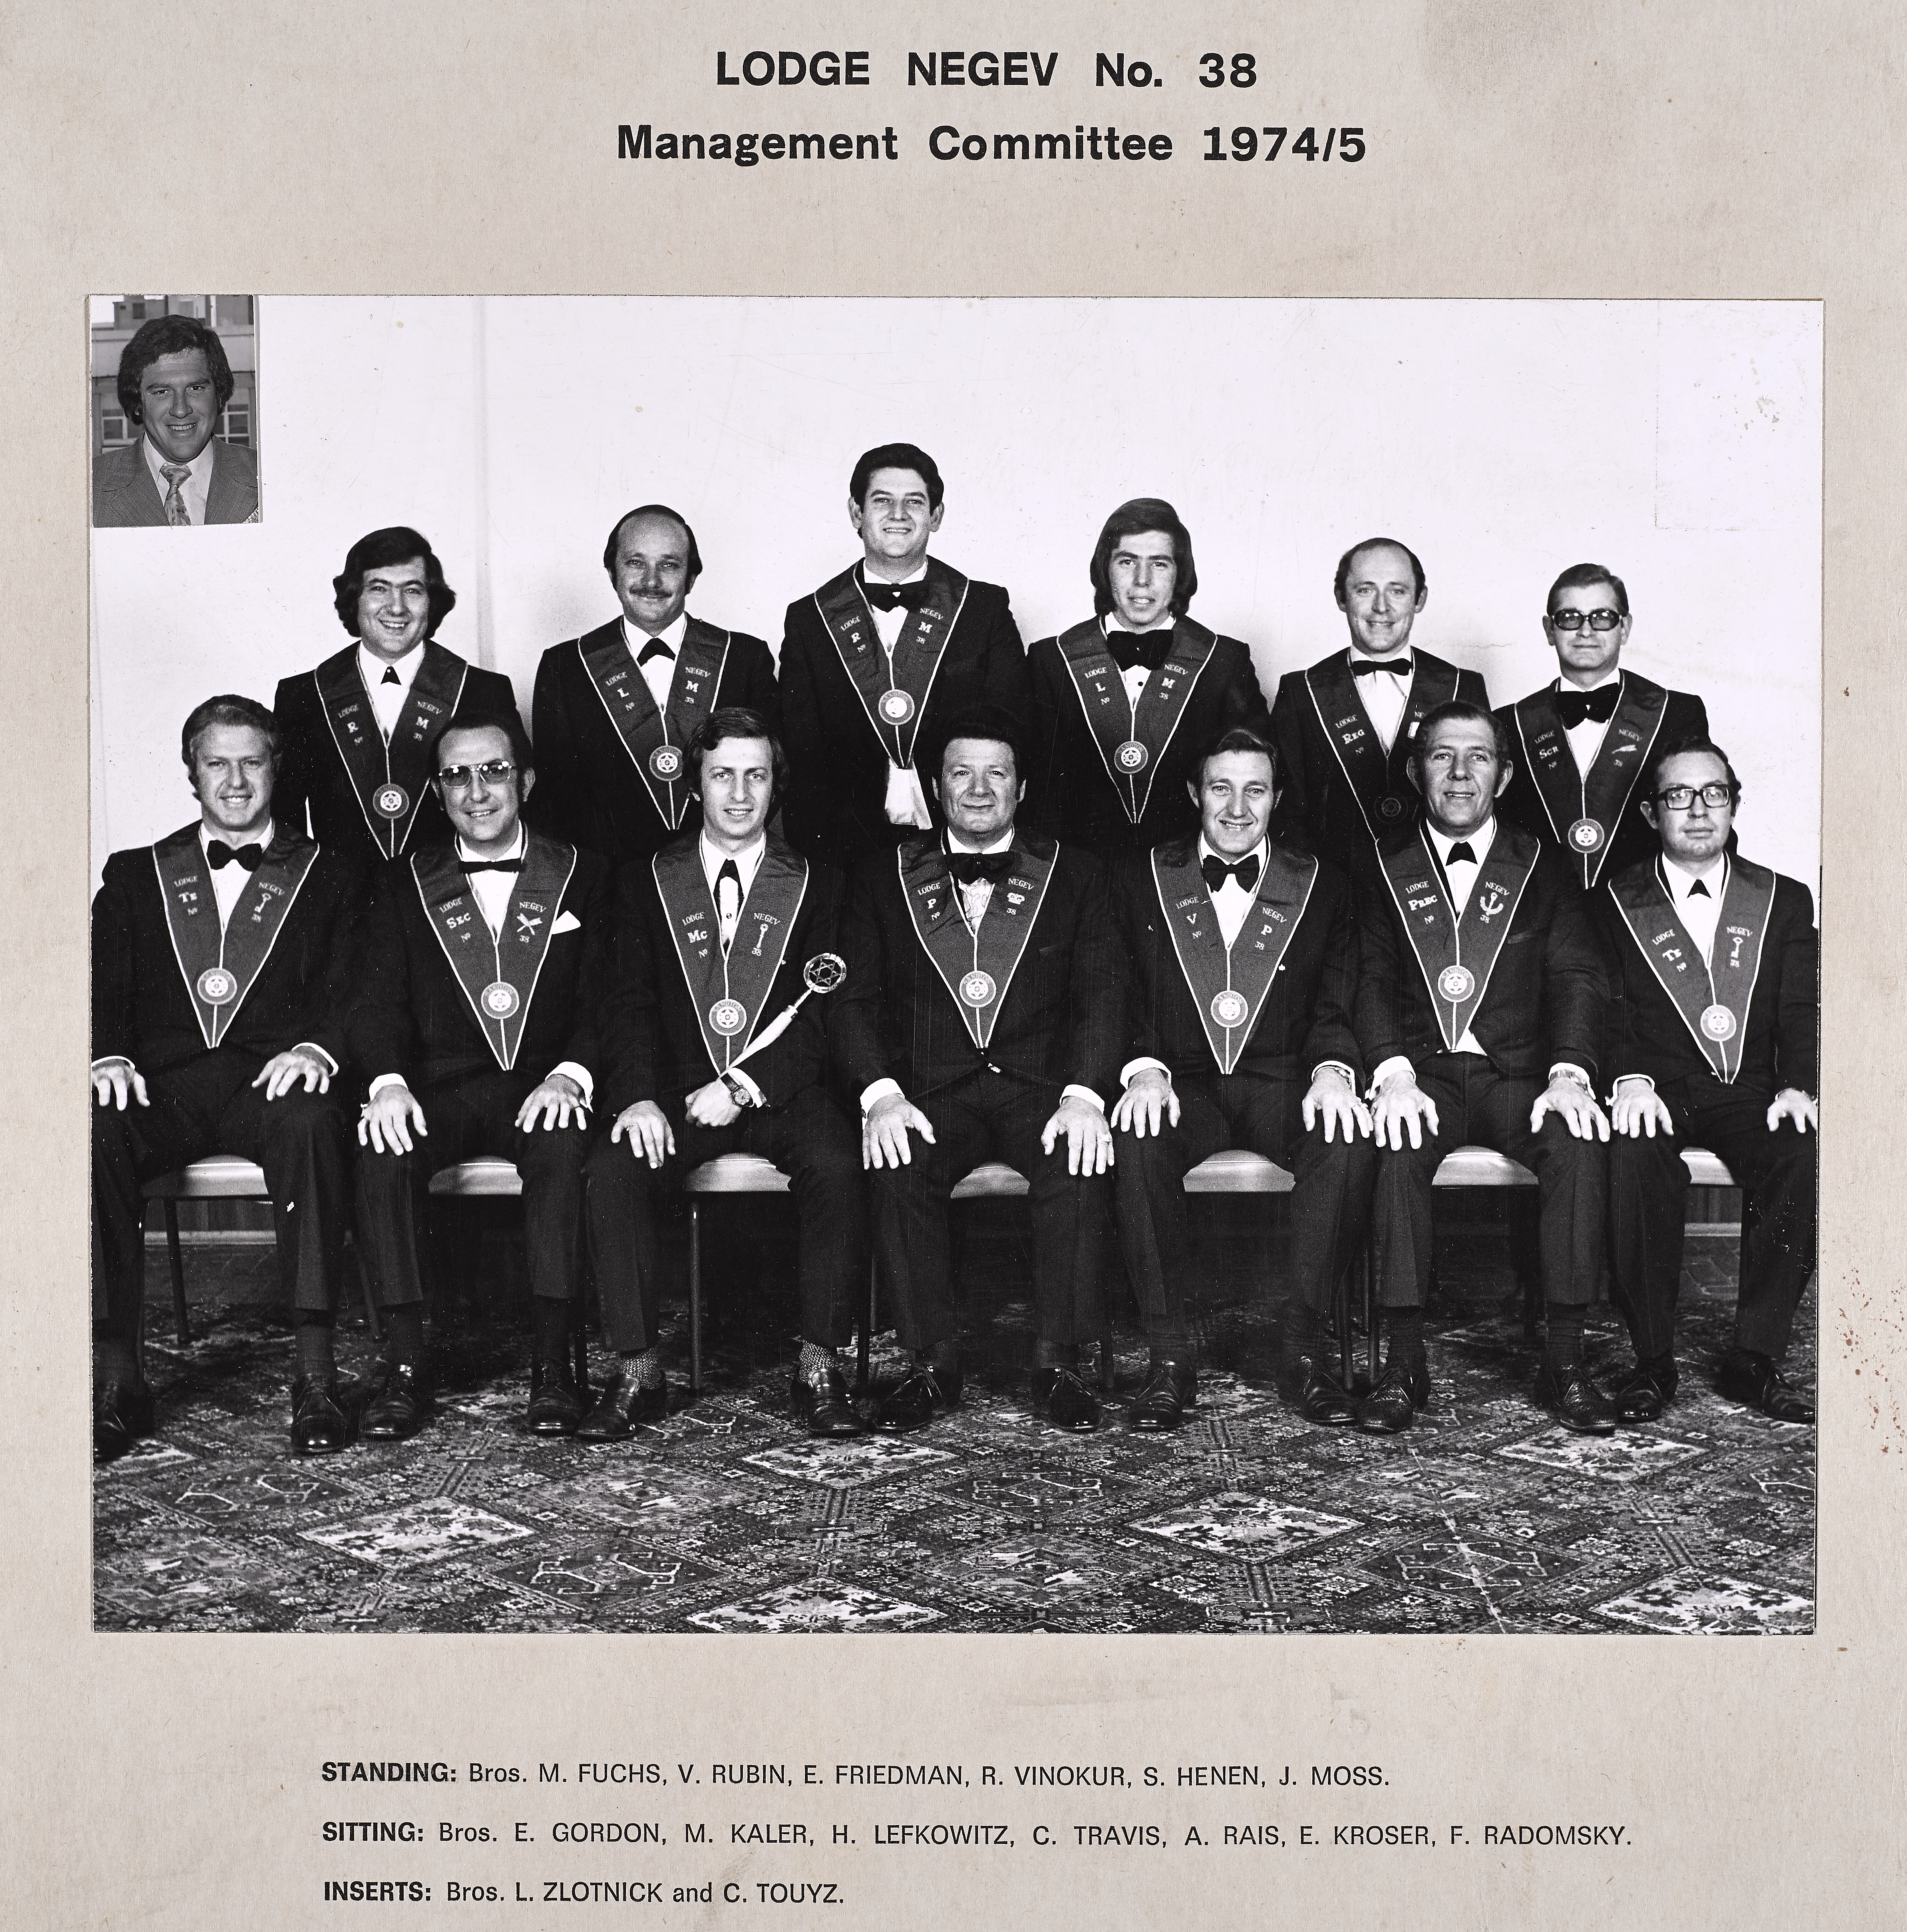 Lodge Negev Management Committee 1974